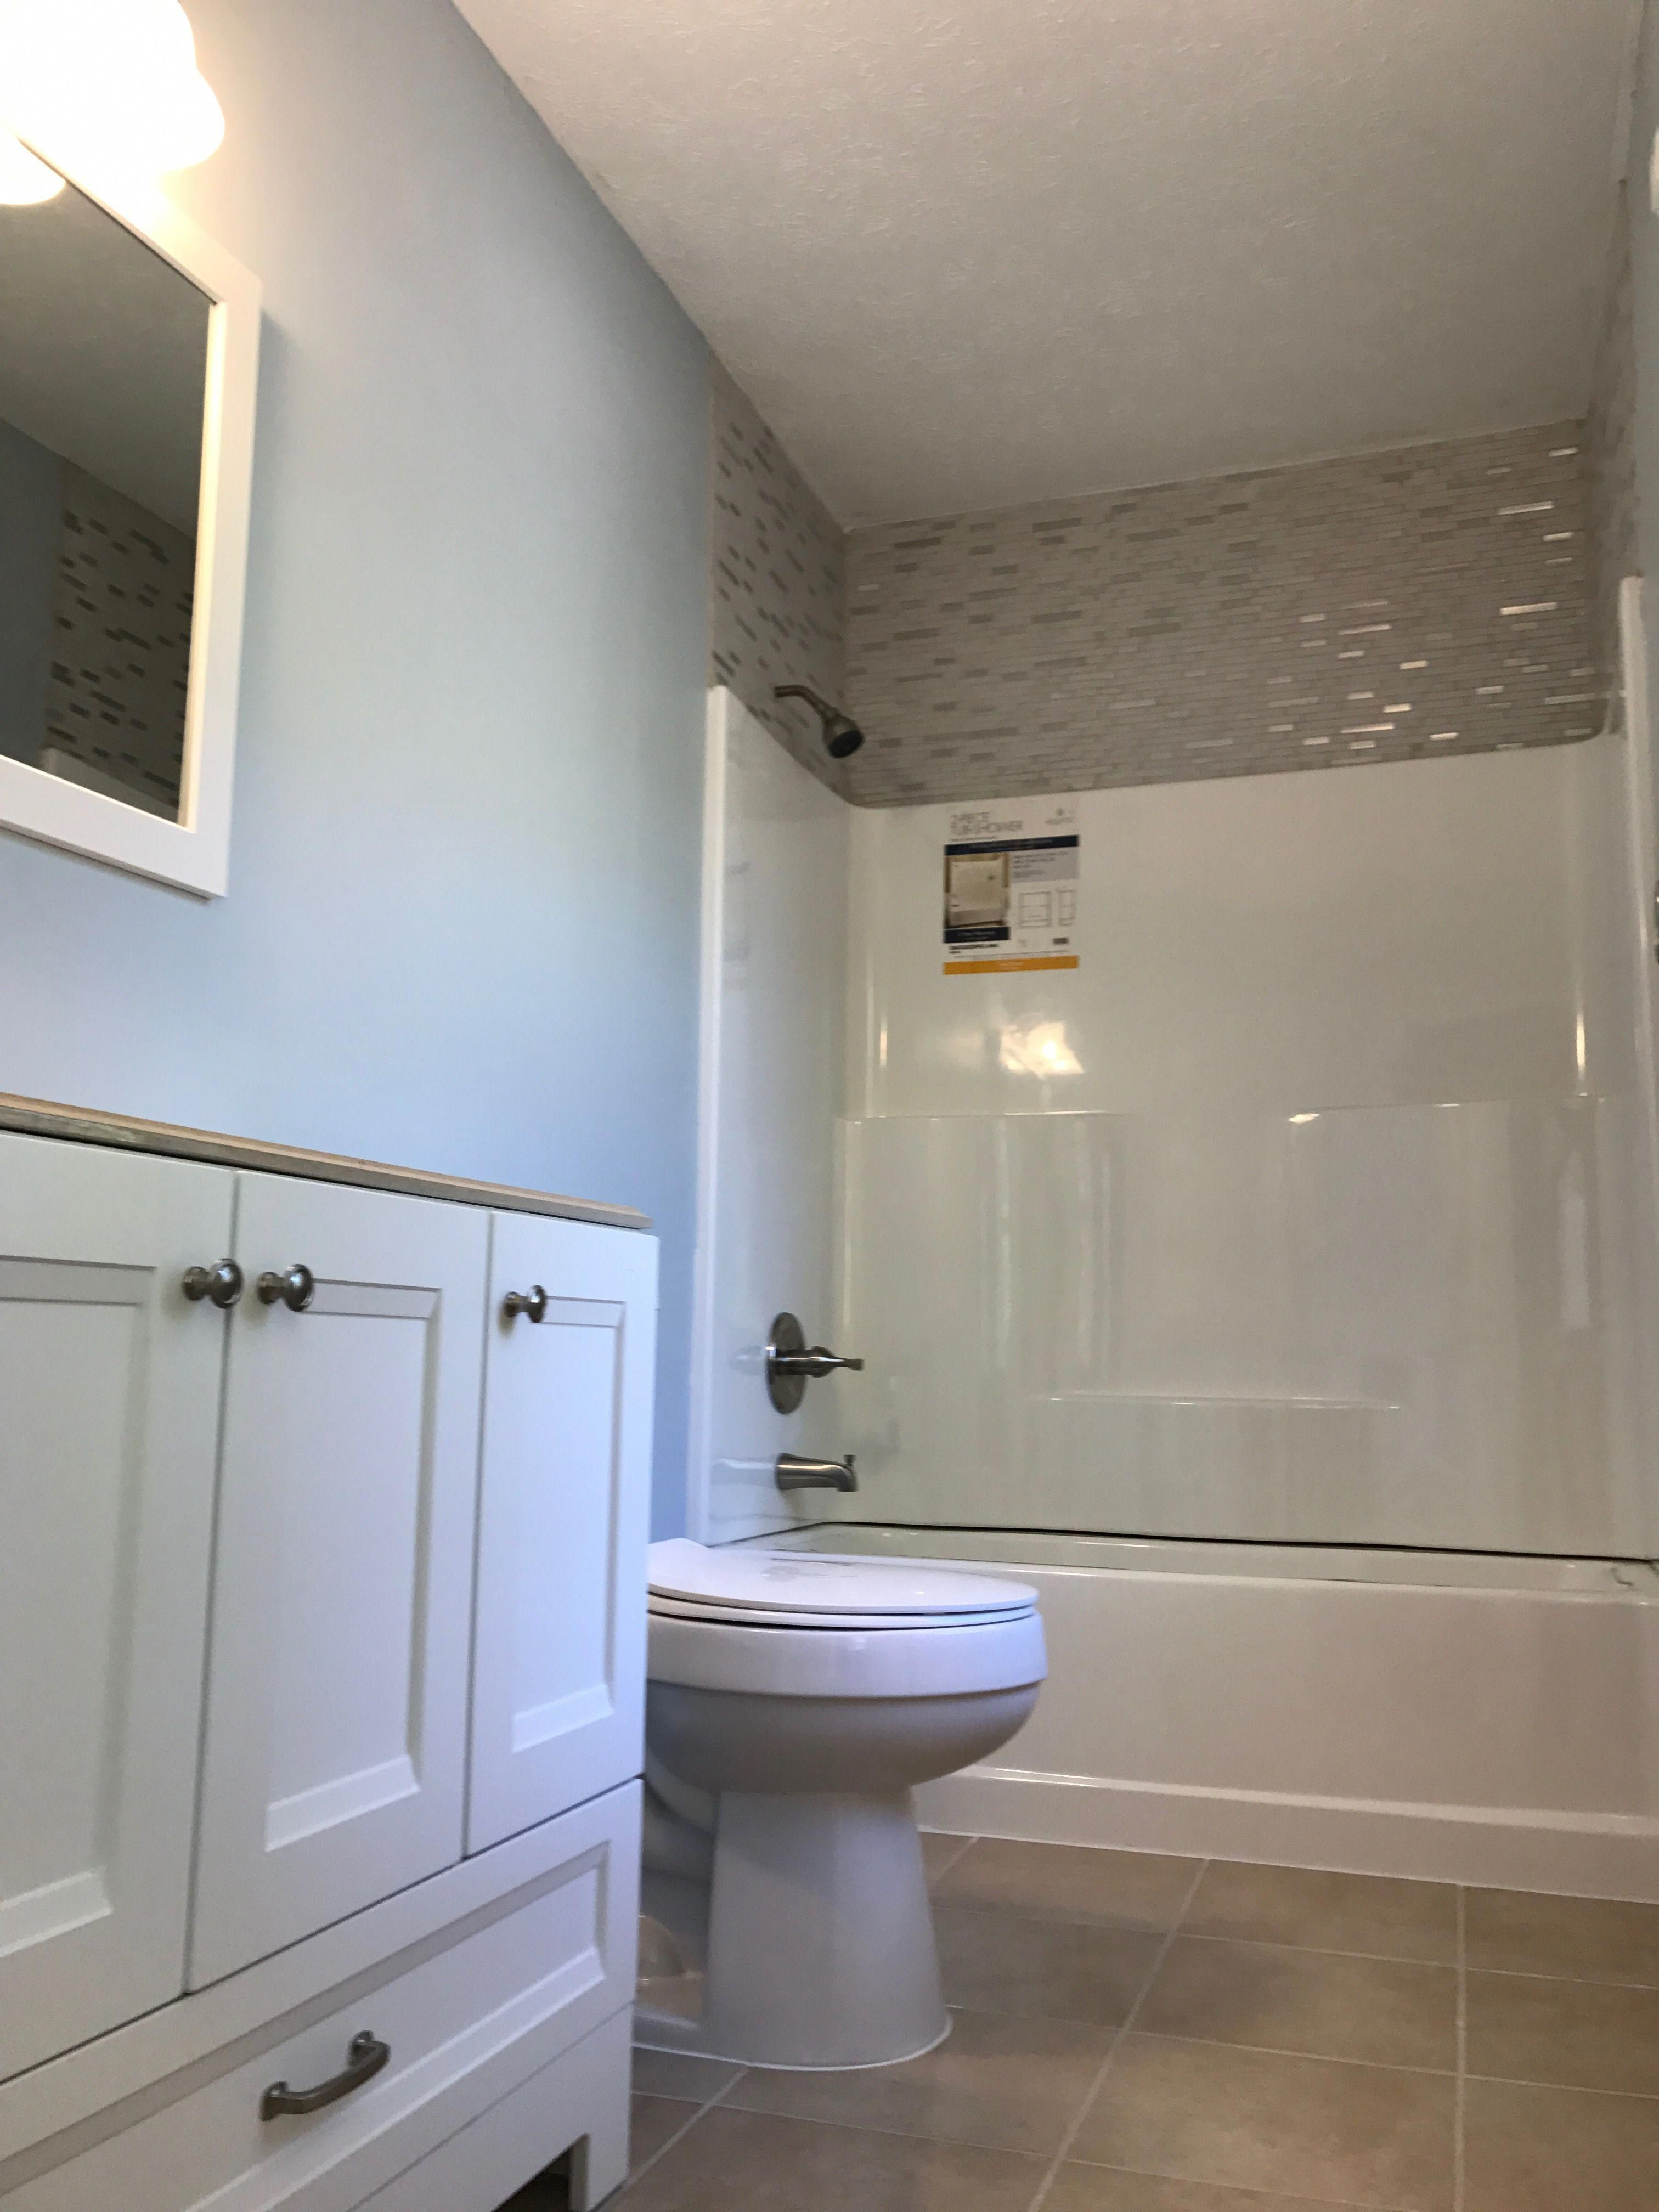 Using Glass Tile Above The Tub In A Small Dark Bathroom Provides A Backdrop For The Light To Bounce Off Of Mirror C Small Bathroom Remodel